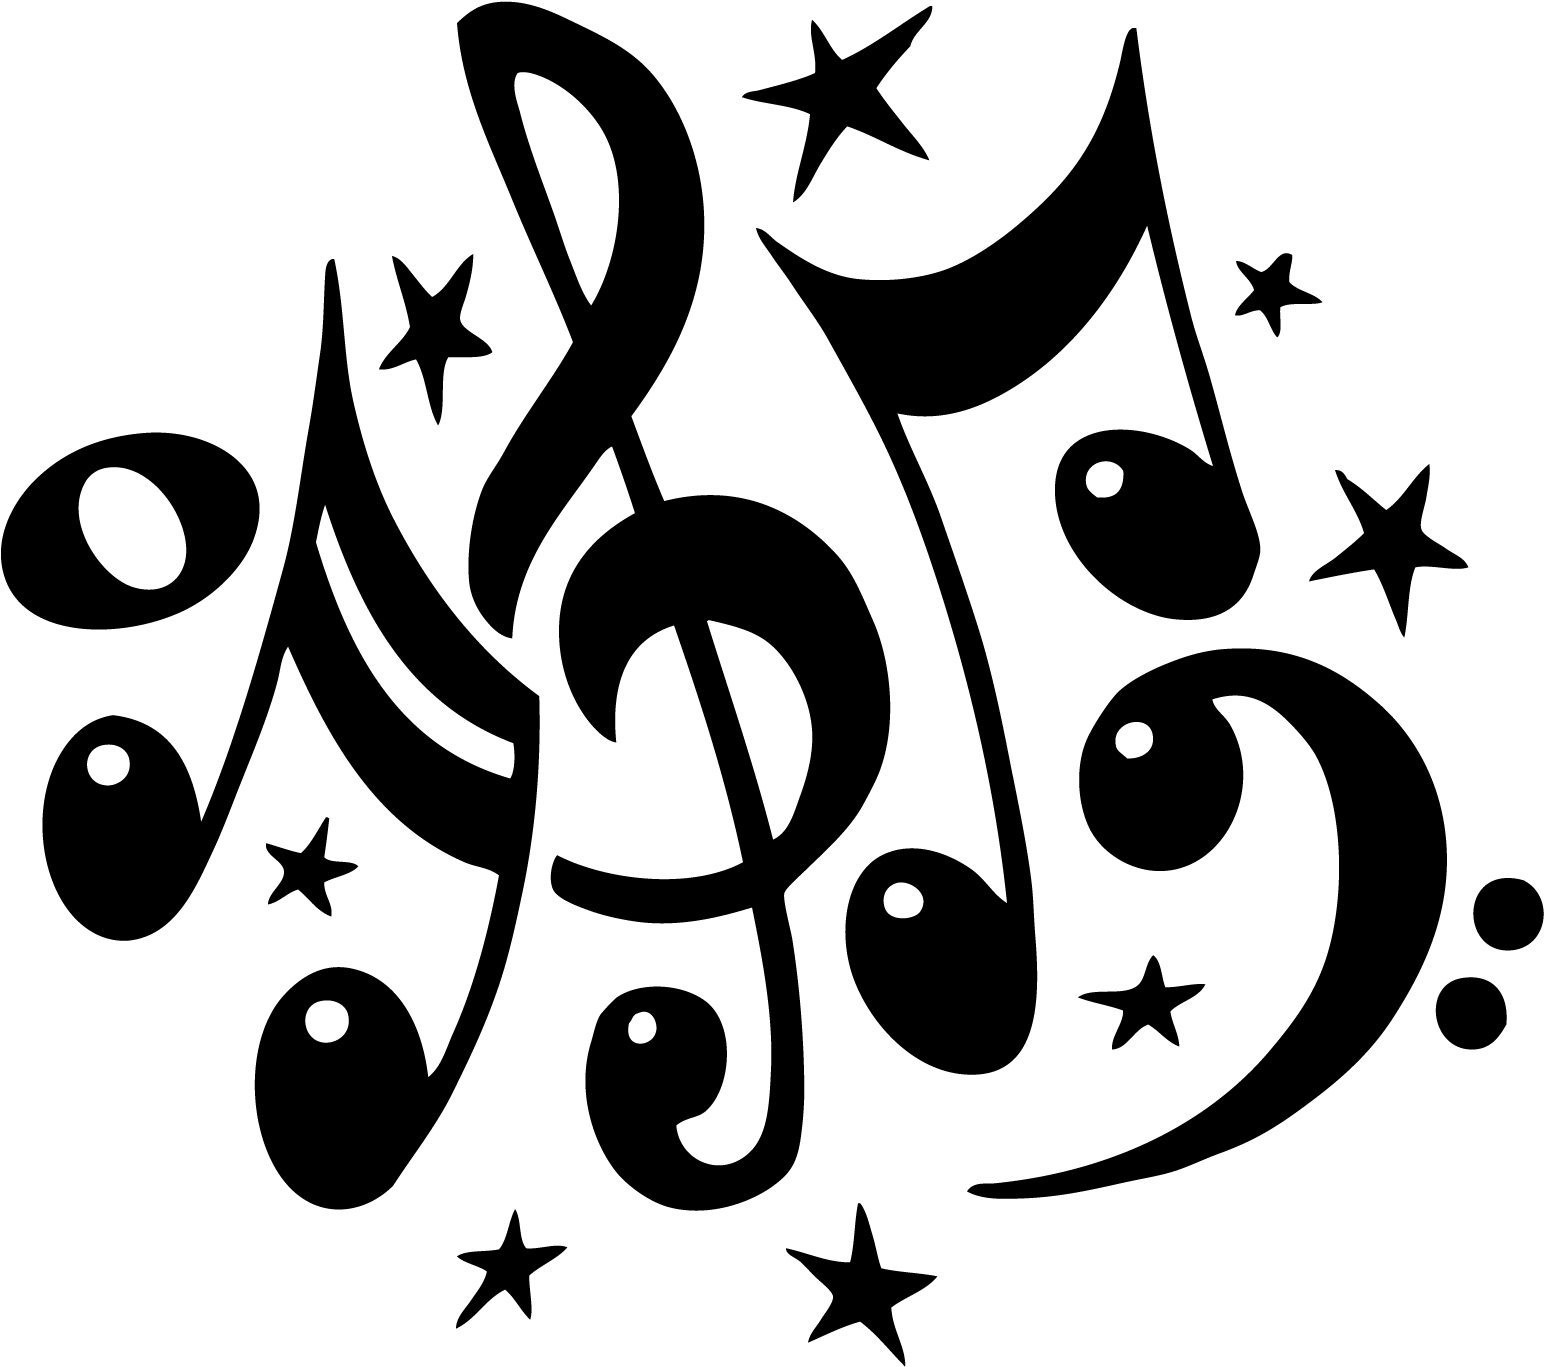 gratis clipart music - photo #7